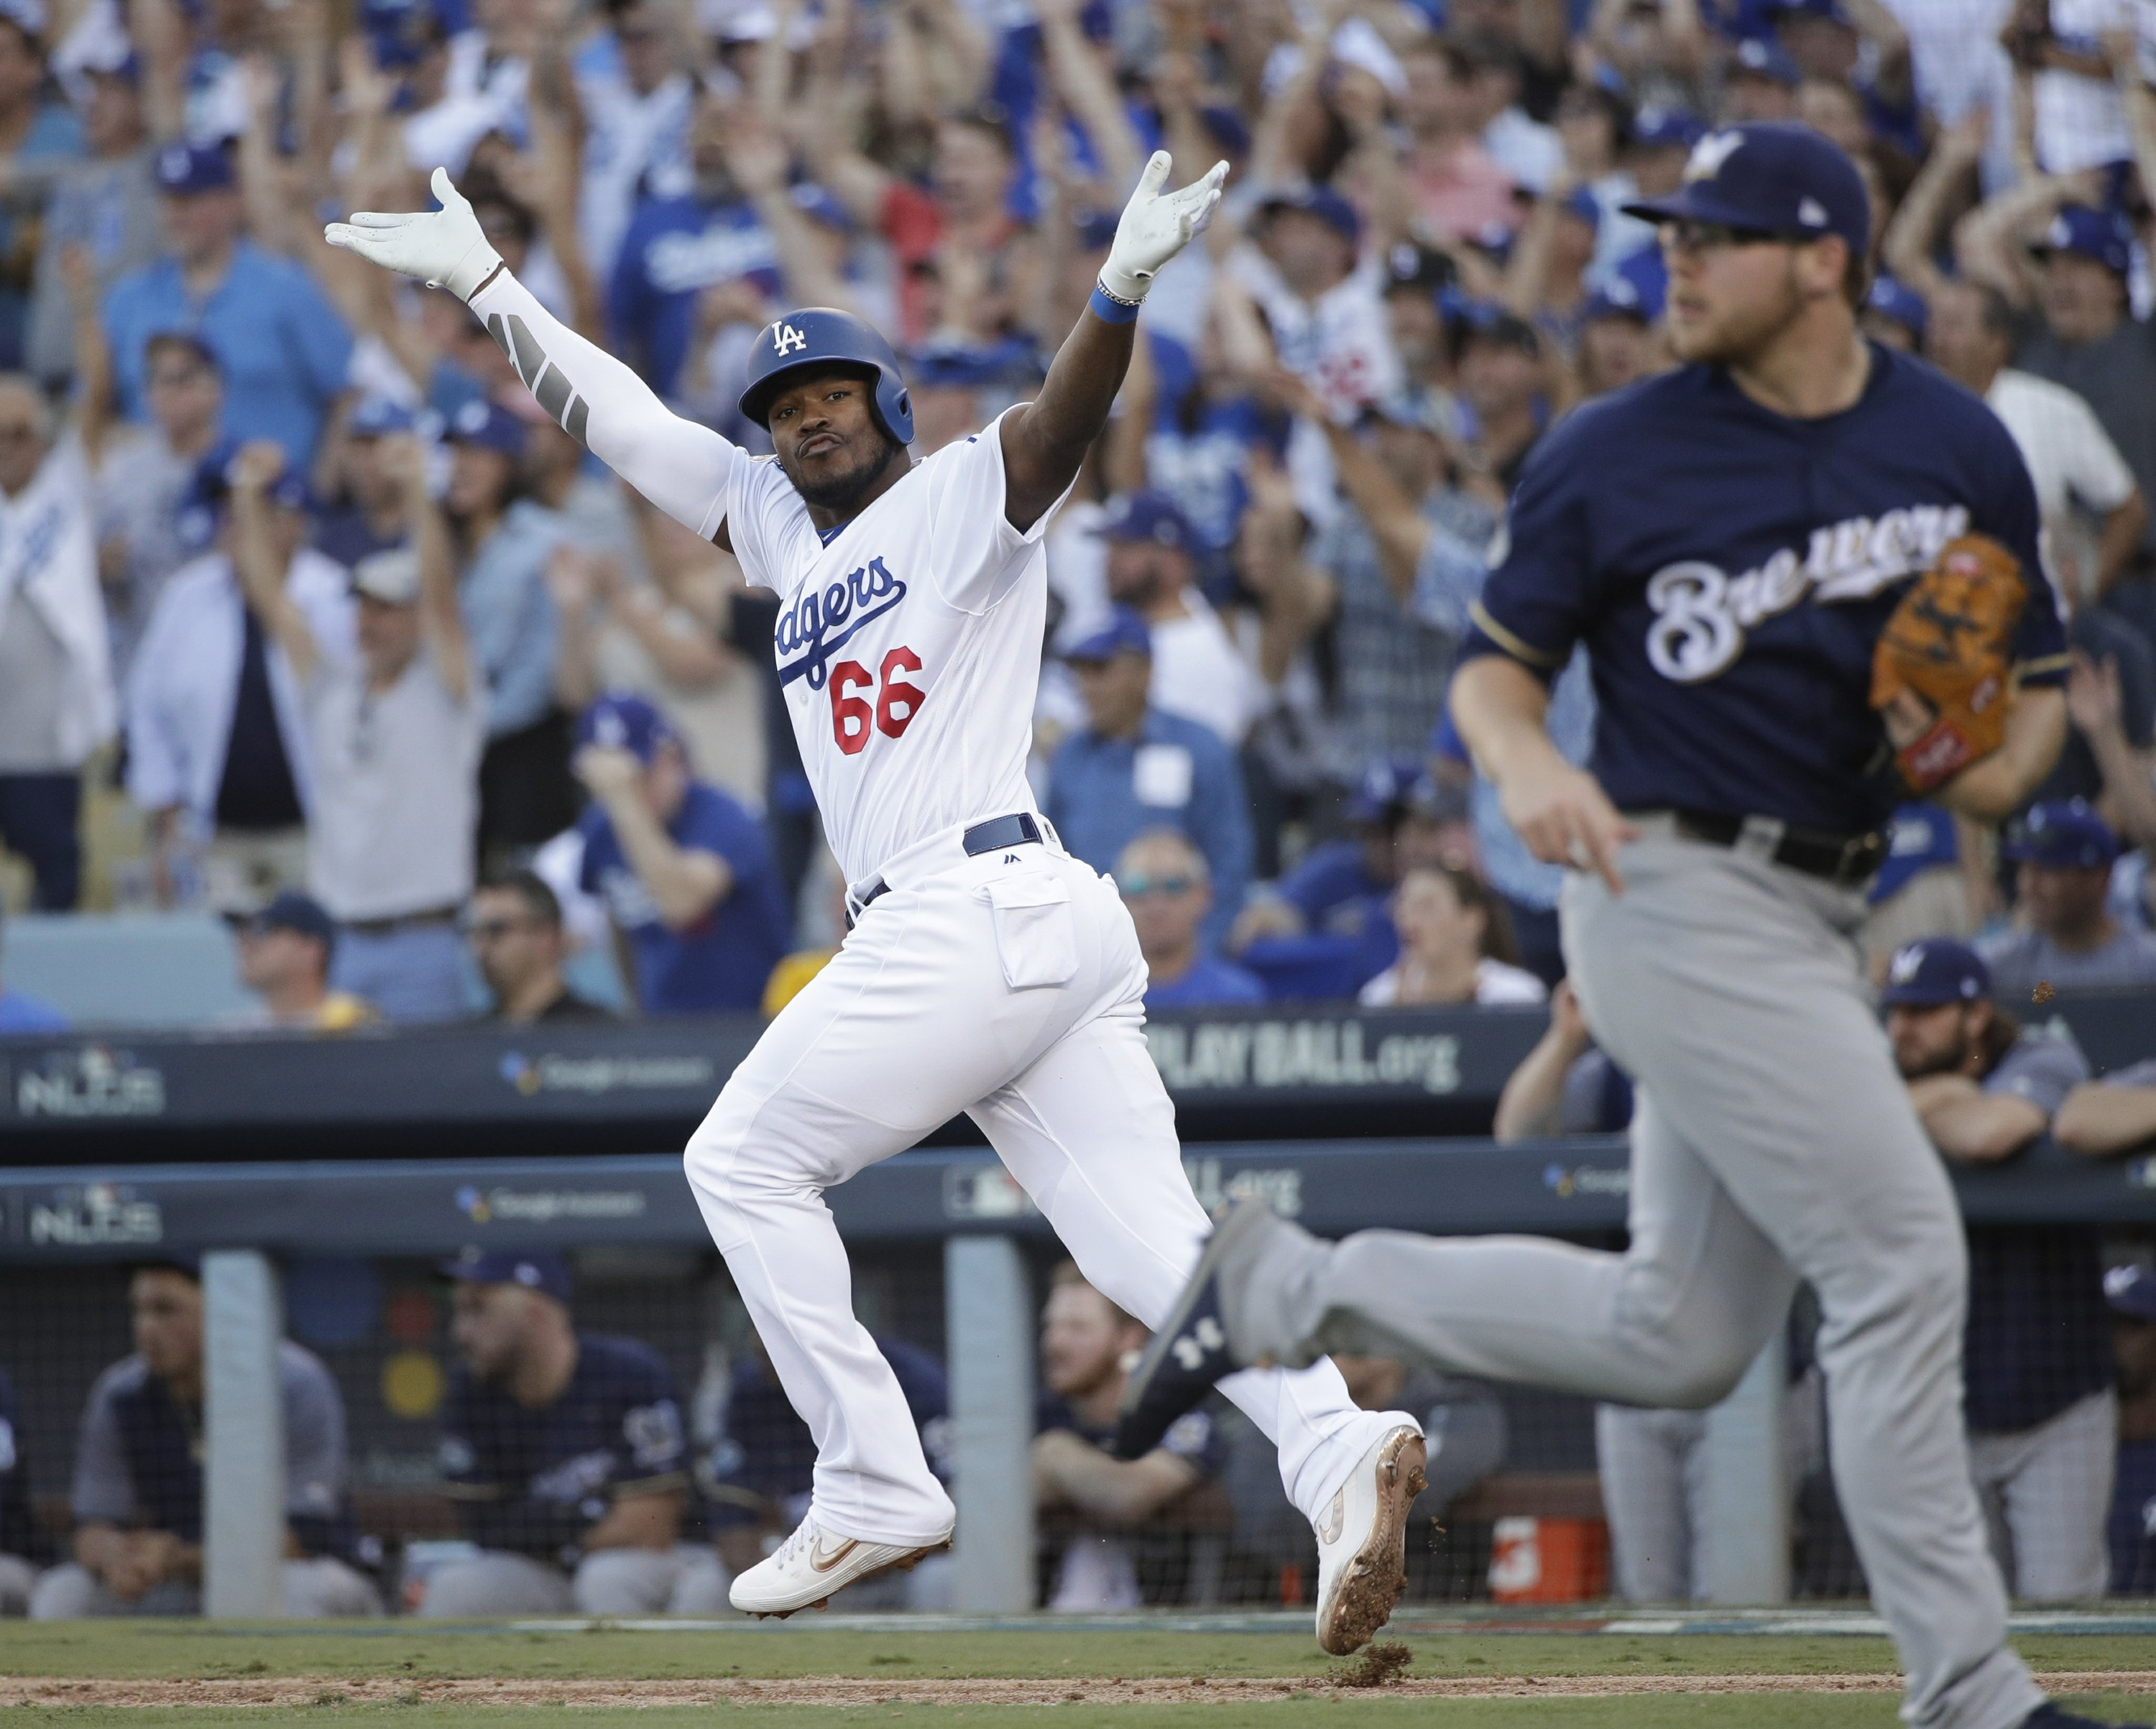 Kershaw dominant, Dodgers beat Brewers, lead NLCS 3-2